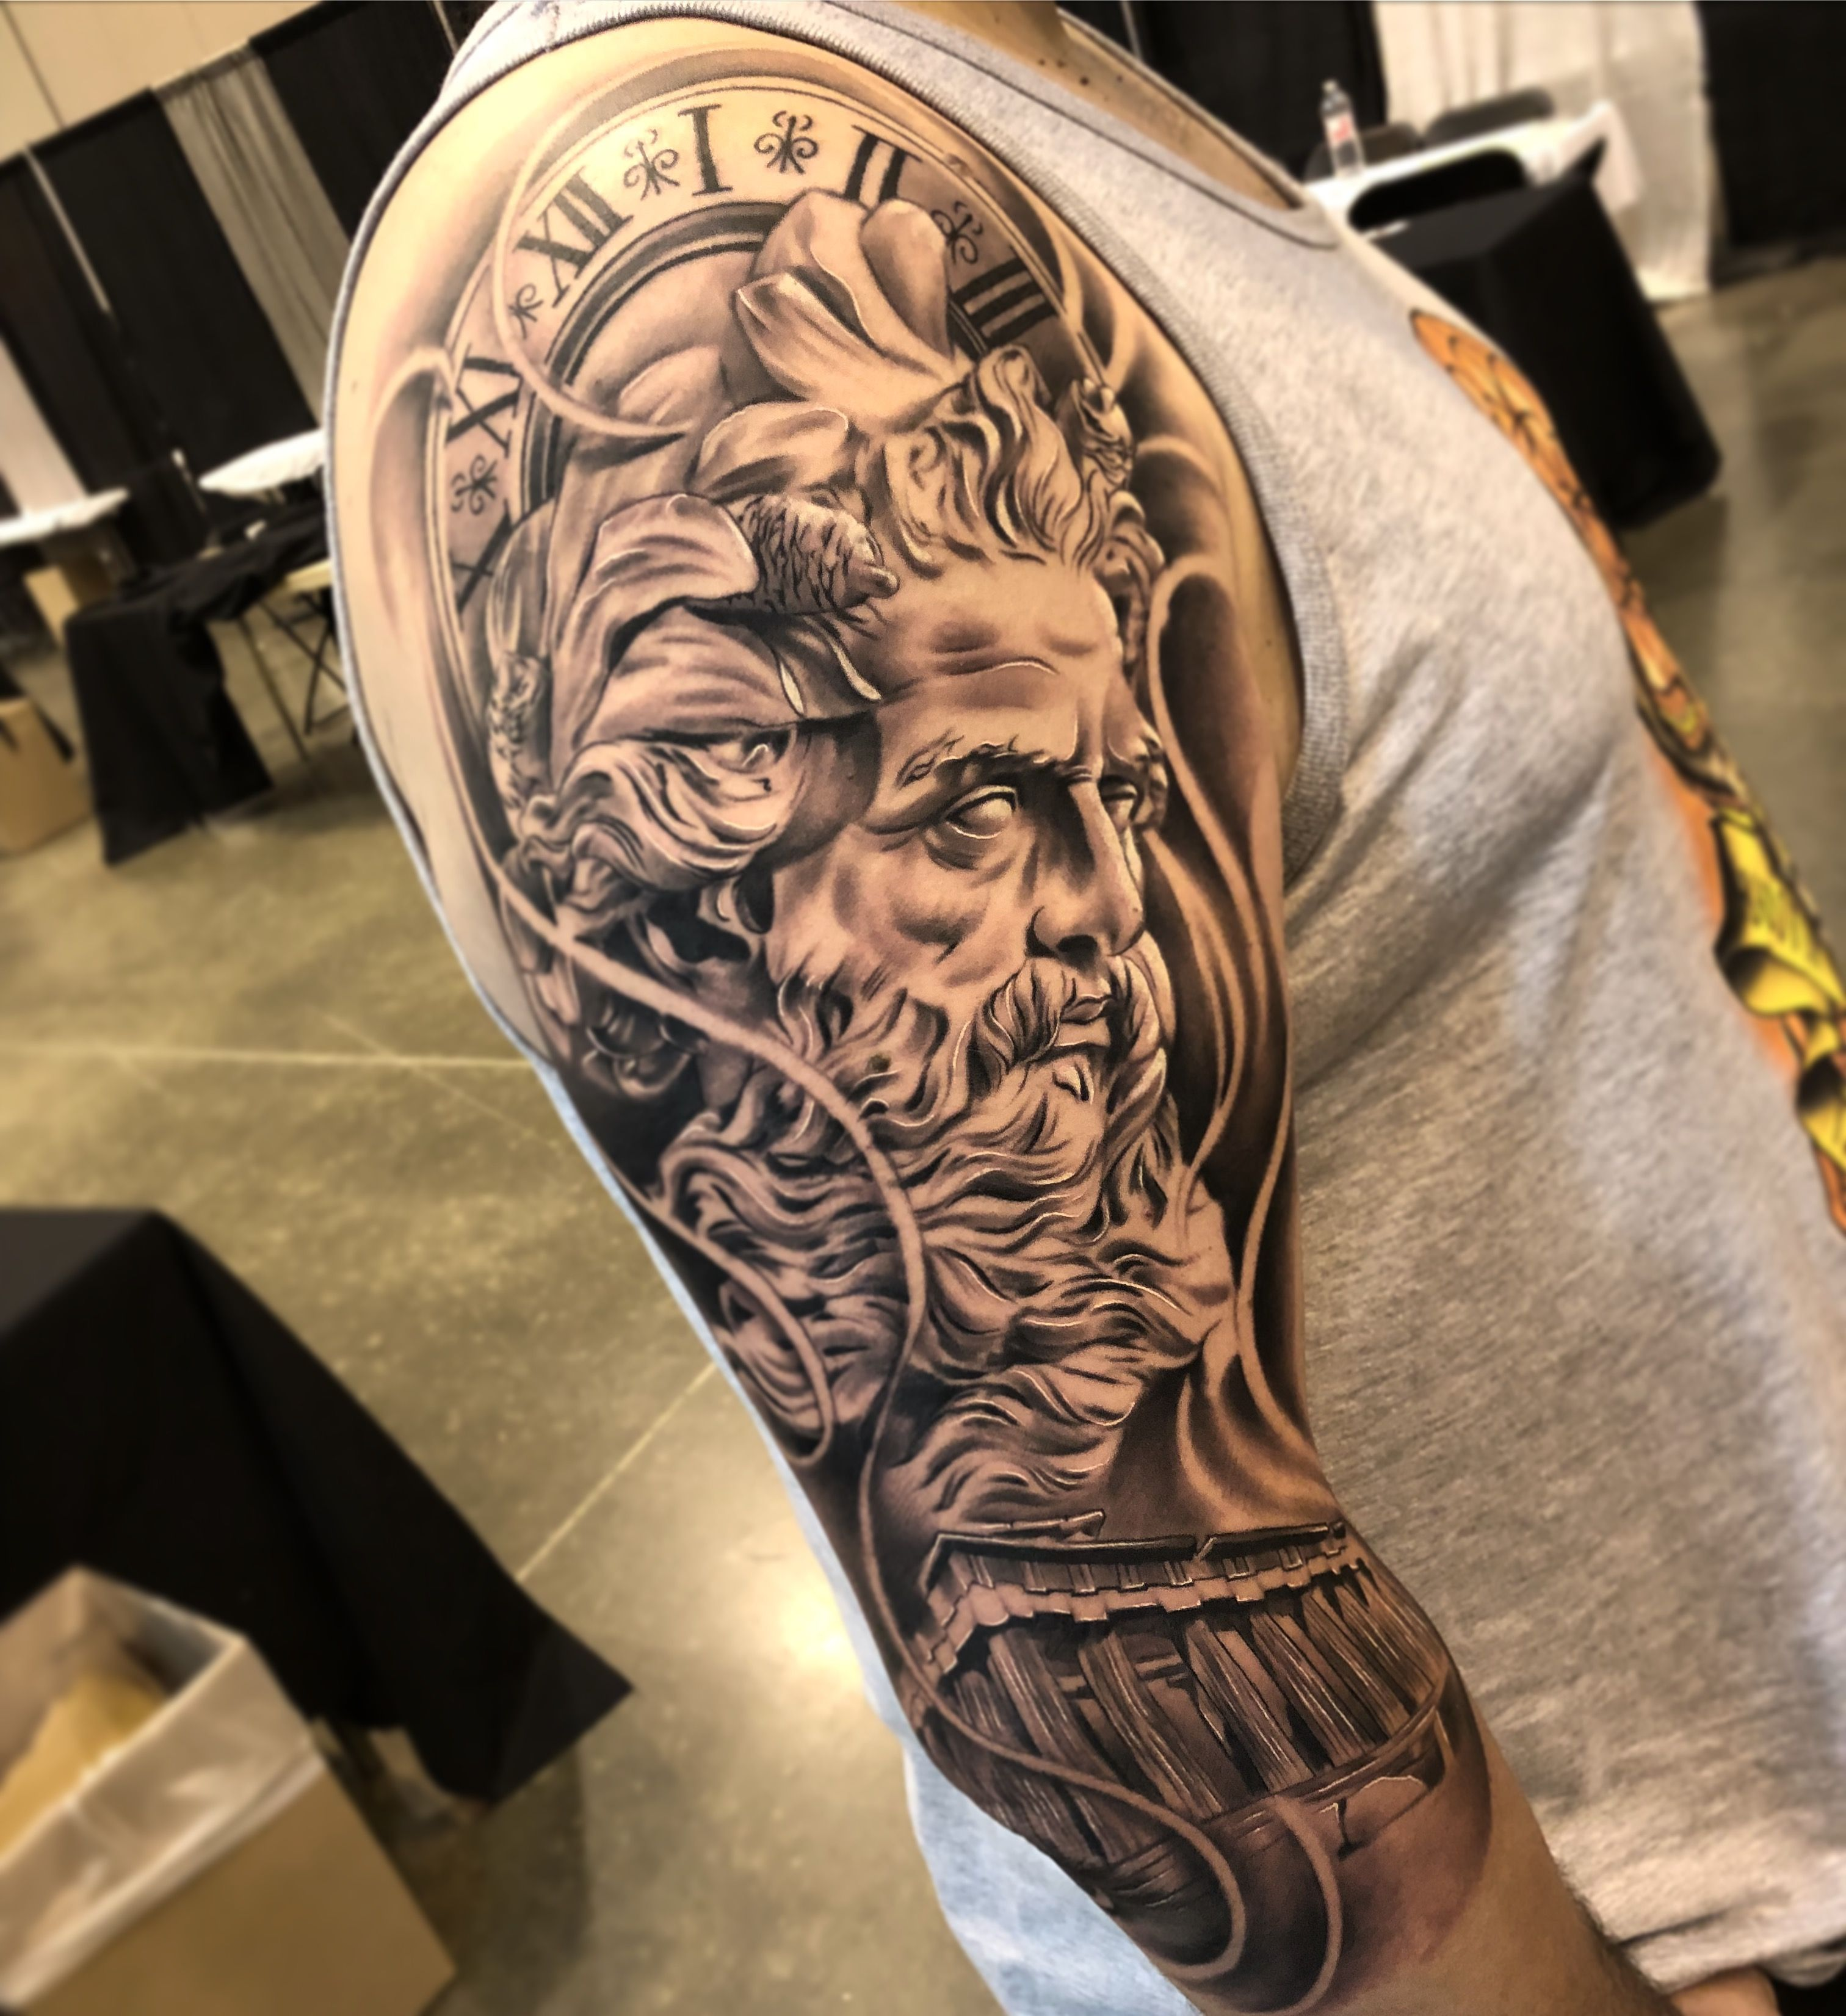 Pin By Gideon Ba On Greek Mythology Zeus Tattoo Greek Tattoos Mythology Tattoos Olampian tattoos # zeus tattoo. pinterest